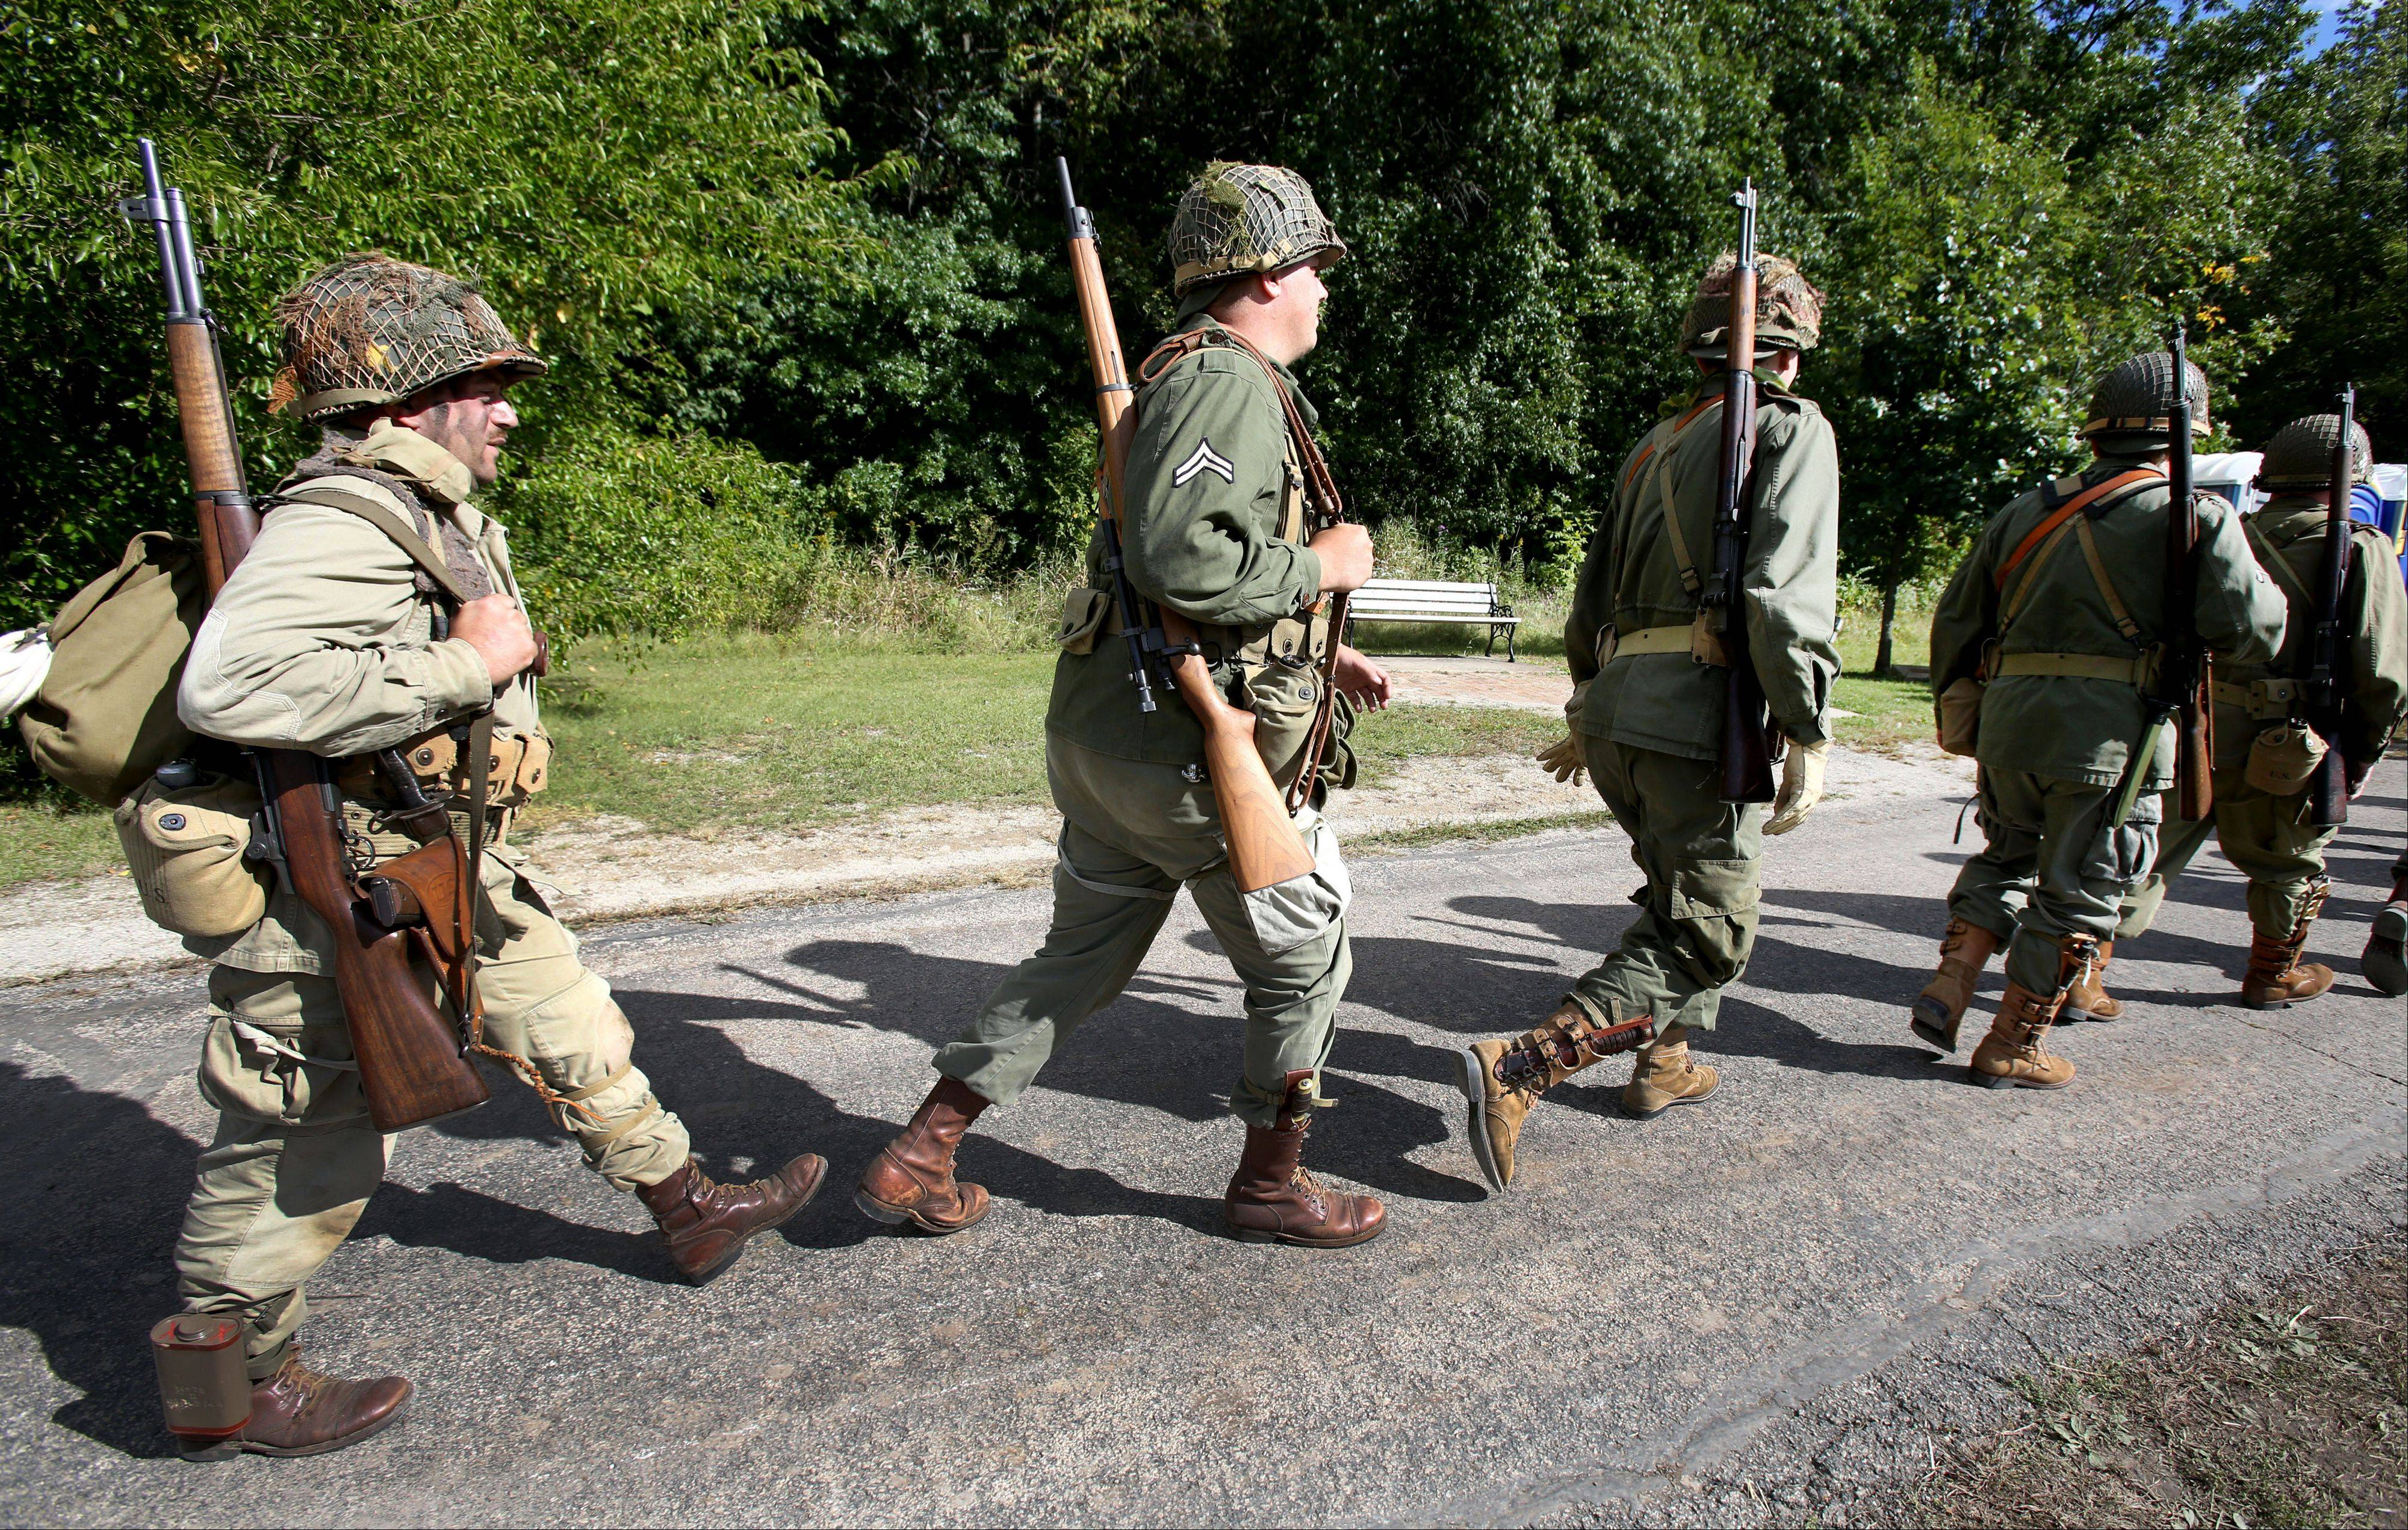 Steve Zahareas marches to a field battle at World War II Days in Rockford.